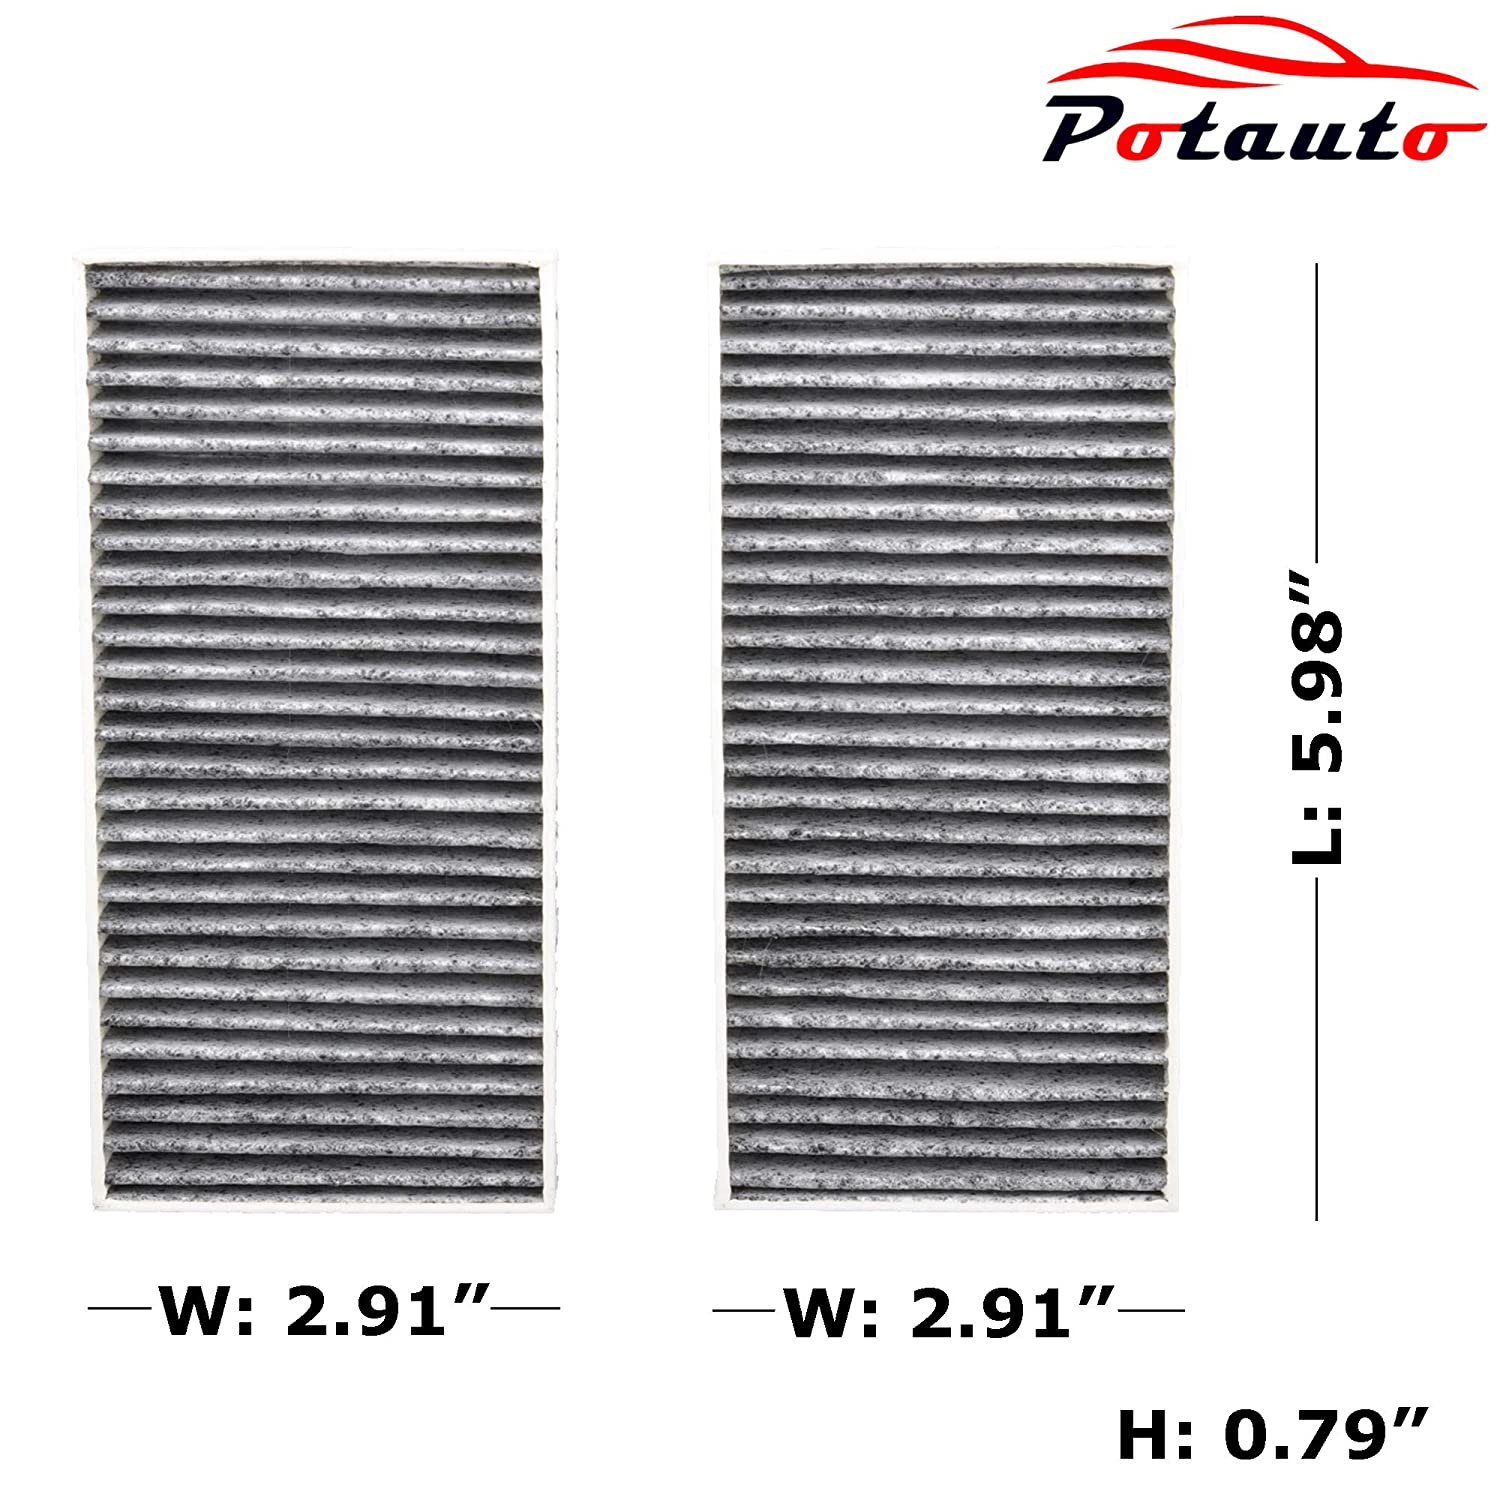 CF11777 WRANGLER POTAUTO MAP 2010C Replacement Activated Carbon Car Cabin Air Filter for JEEP